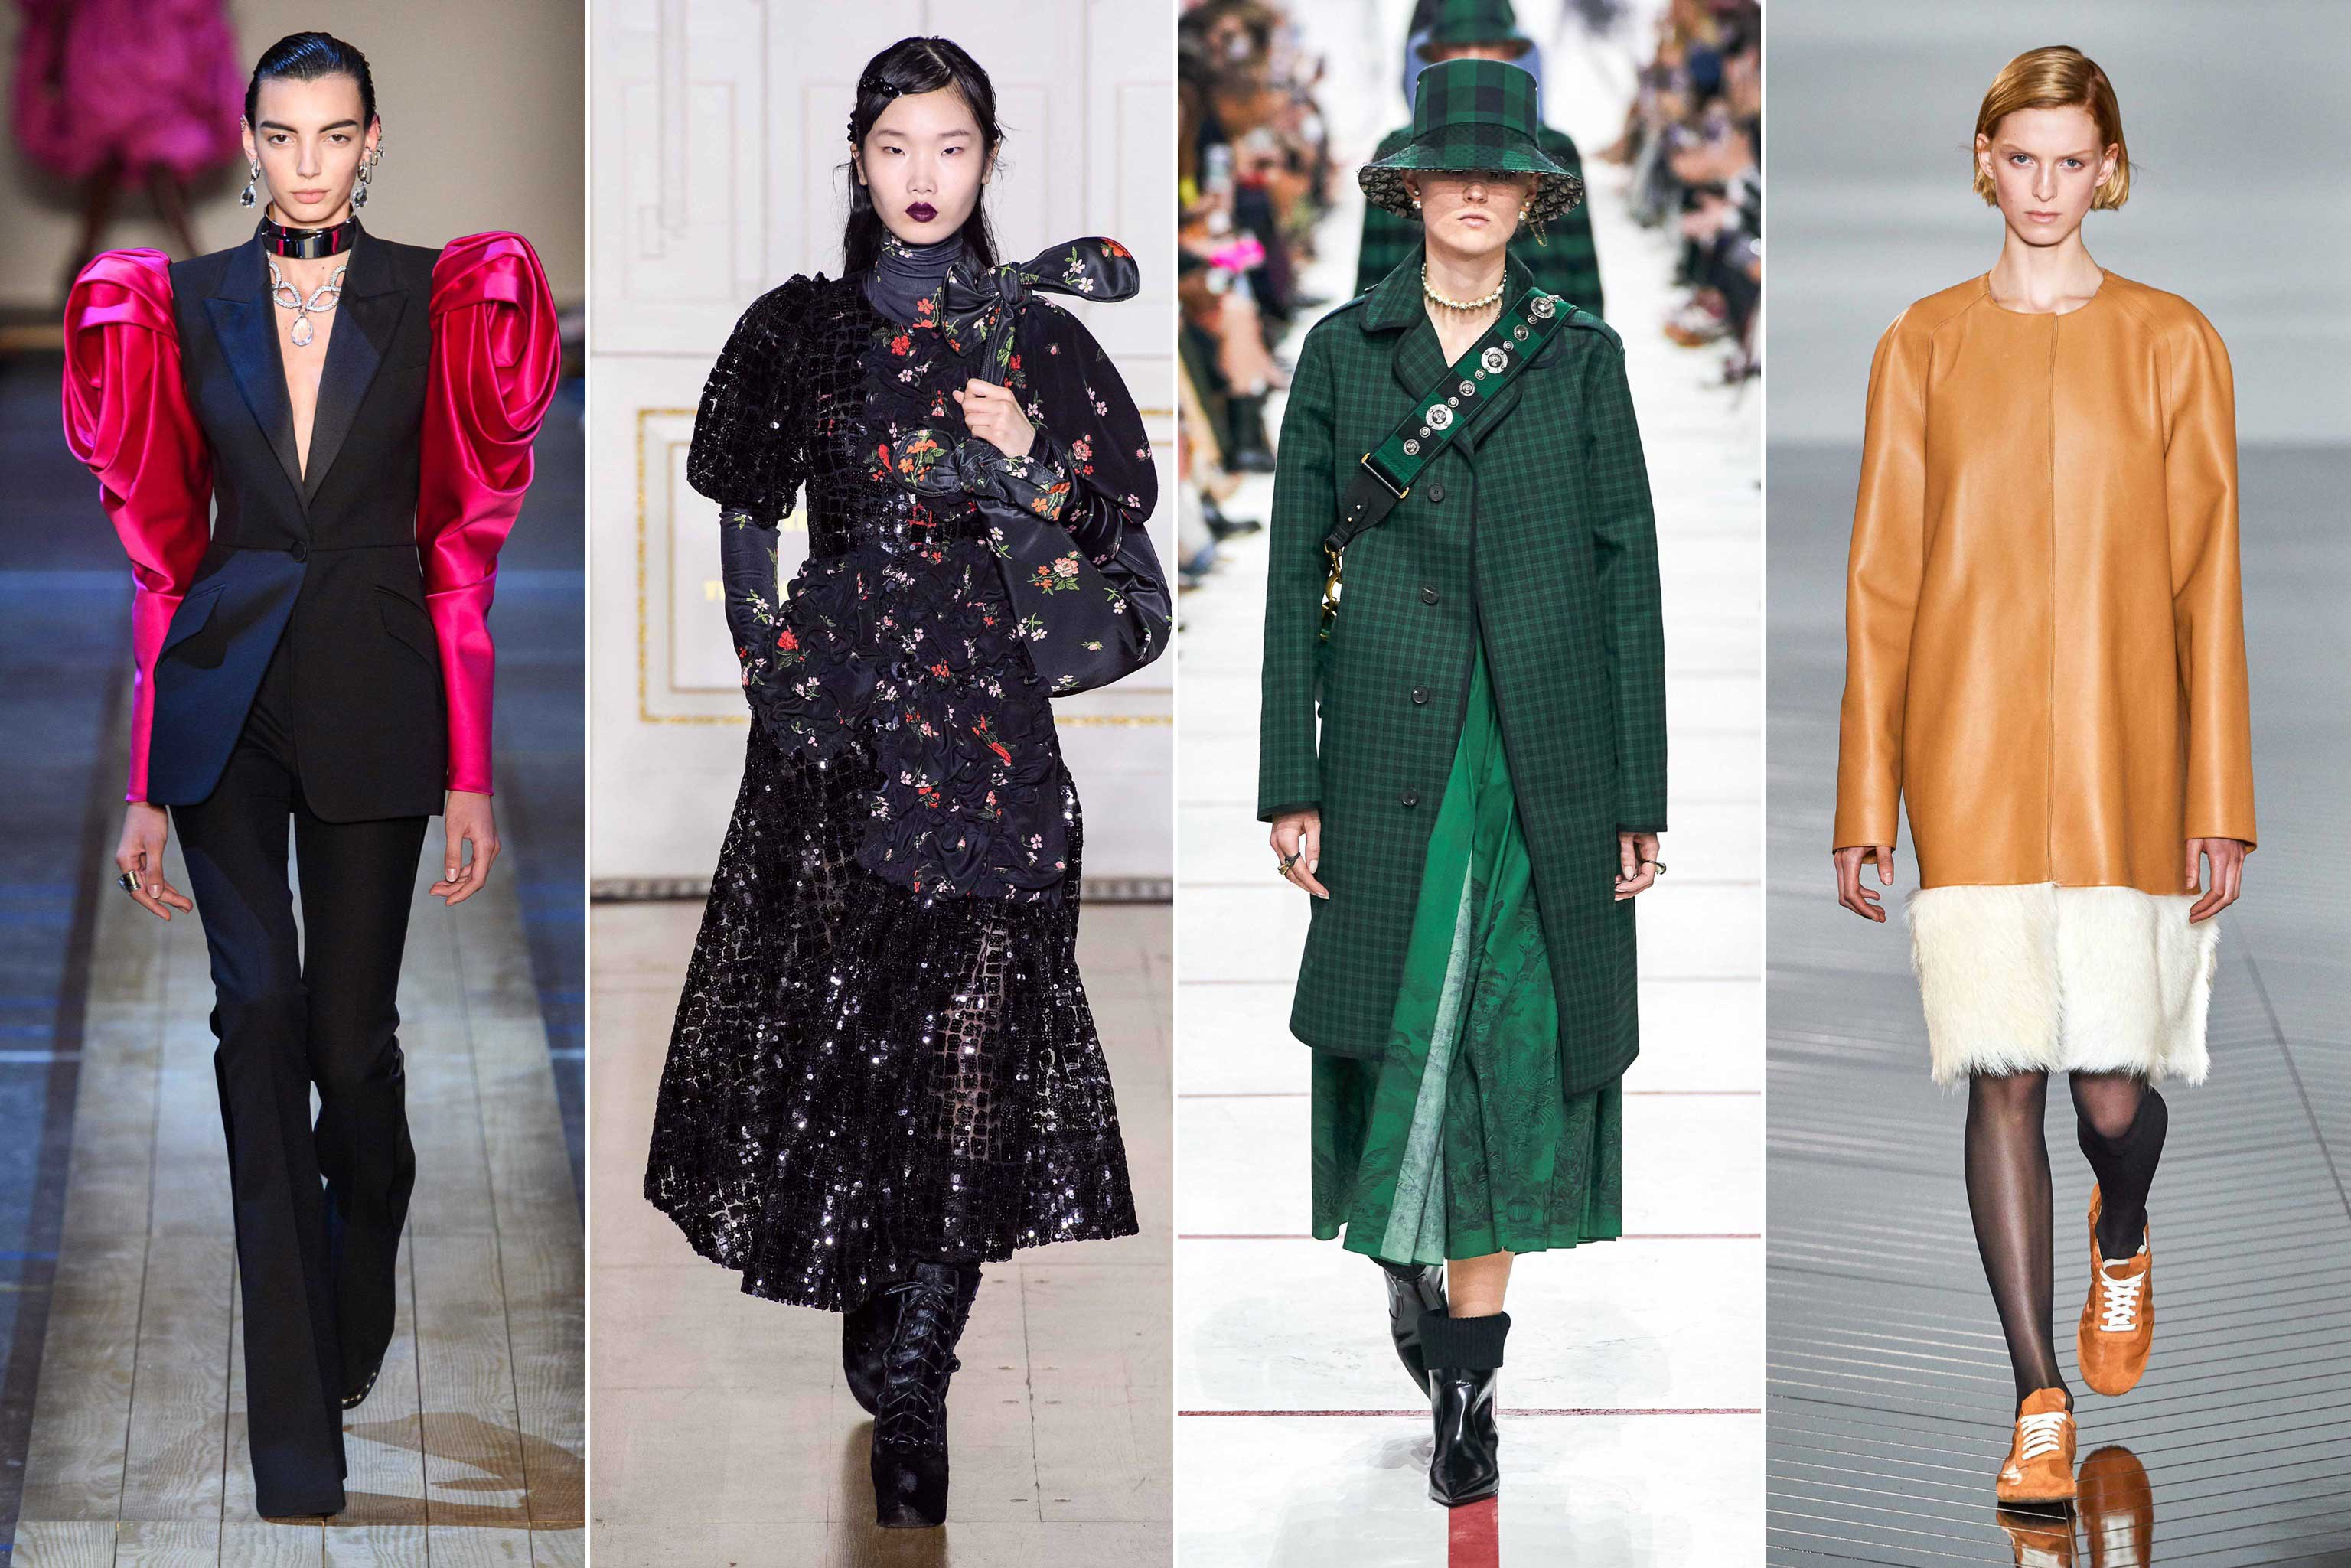 Fall Winter 2019 2020 Trends - Fashion Week Coverage